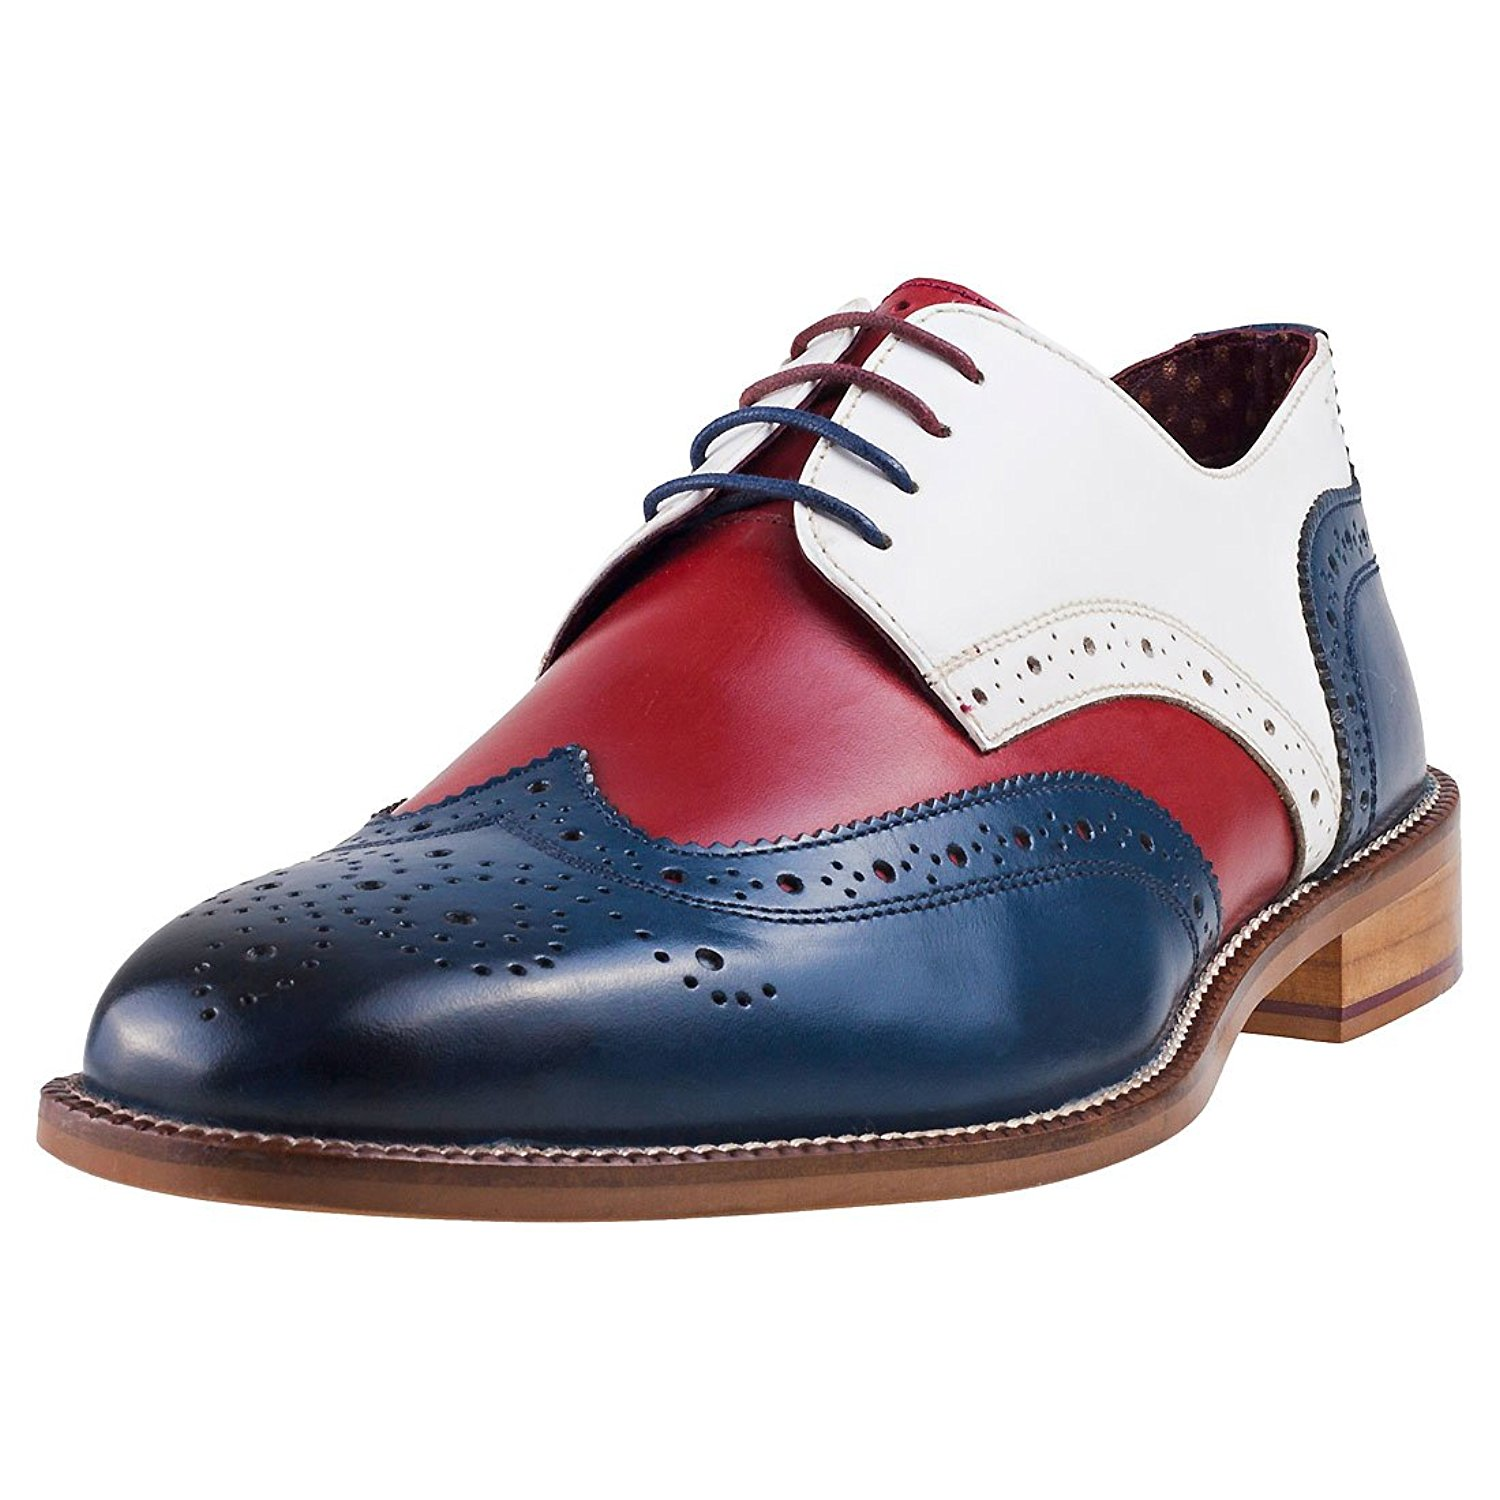 0a1eb6cde6c9 Cheap Mens Derby Brogues, find Mens Derby Brogues deals on line at ...